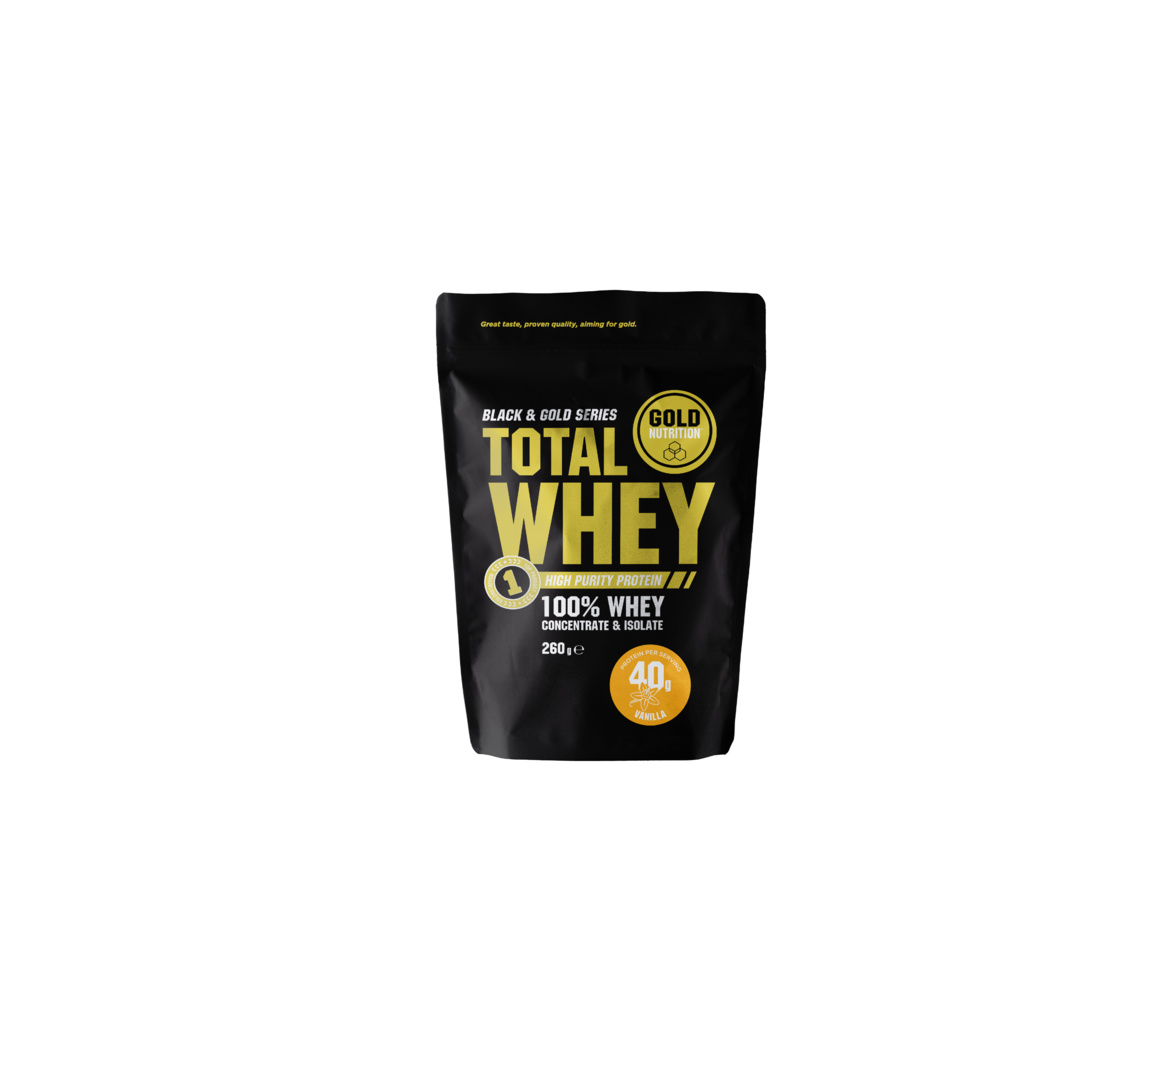 GOLDNUTRITION TOTAL WHEY VANILIE 260GR